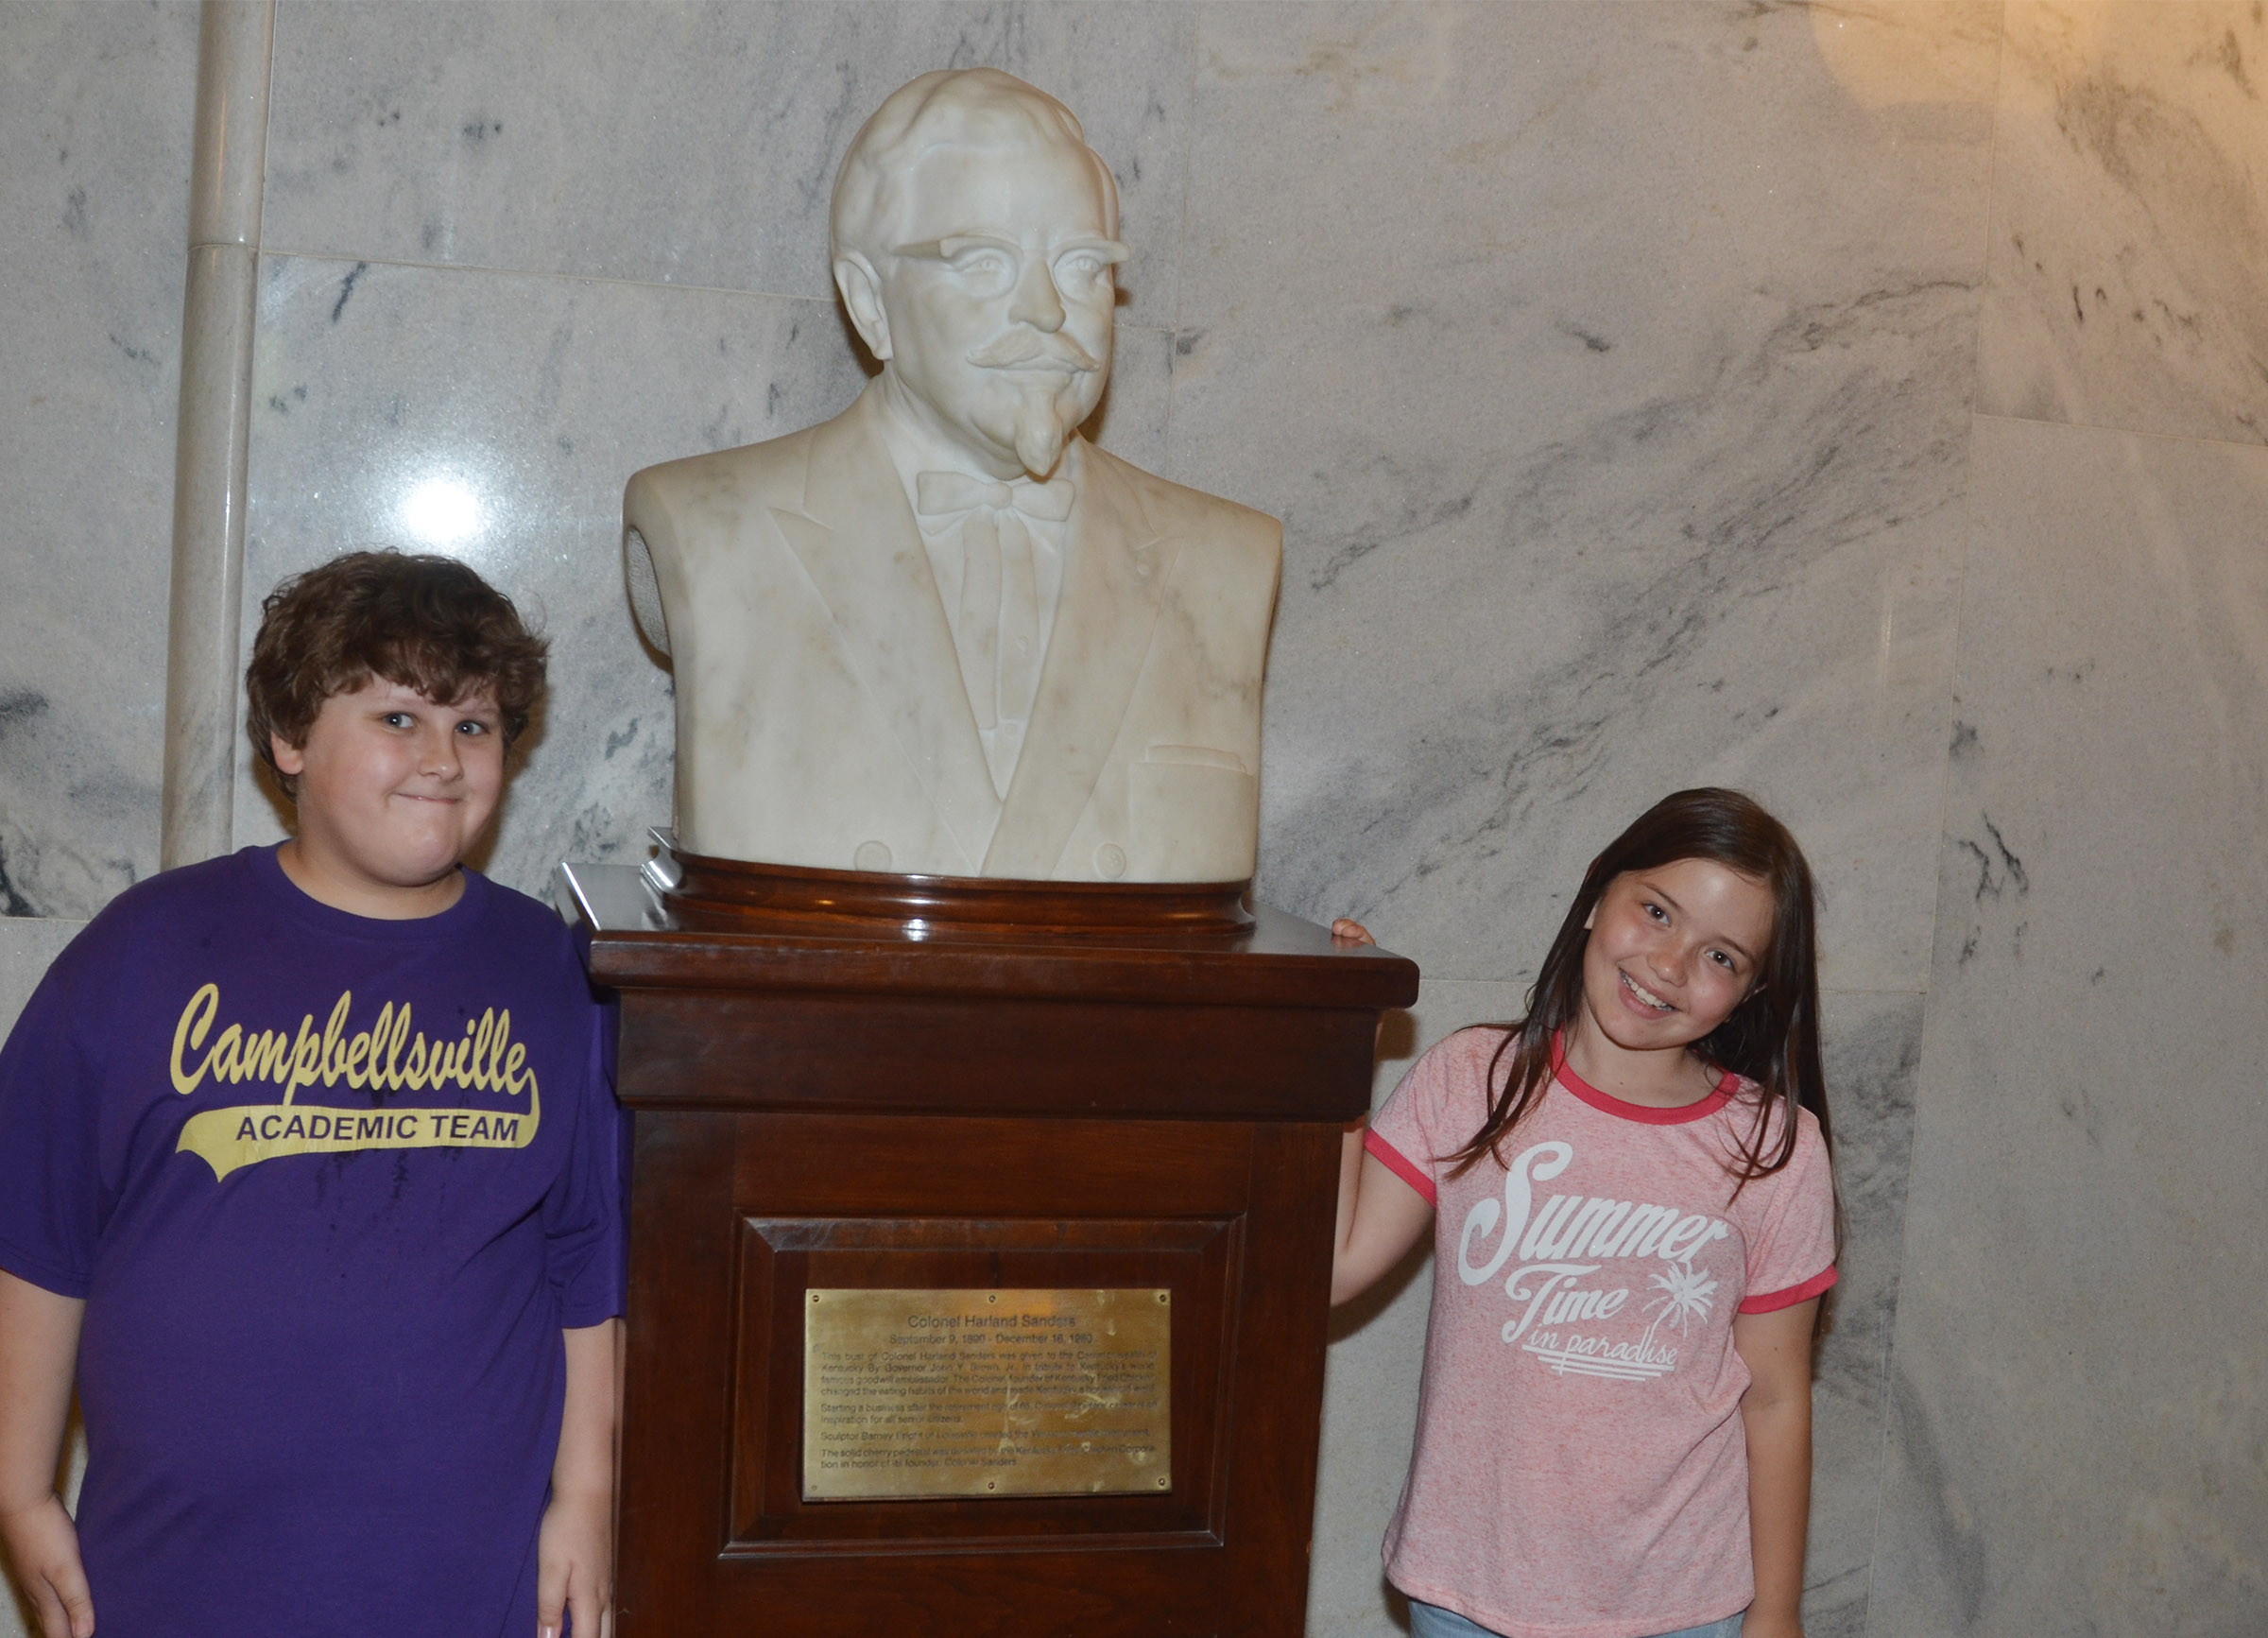 CMS fourth-graders Zeke Harris, at left, and Kate Billeter pose for a photo with a statue of Colonel Harland Sanders.